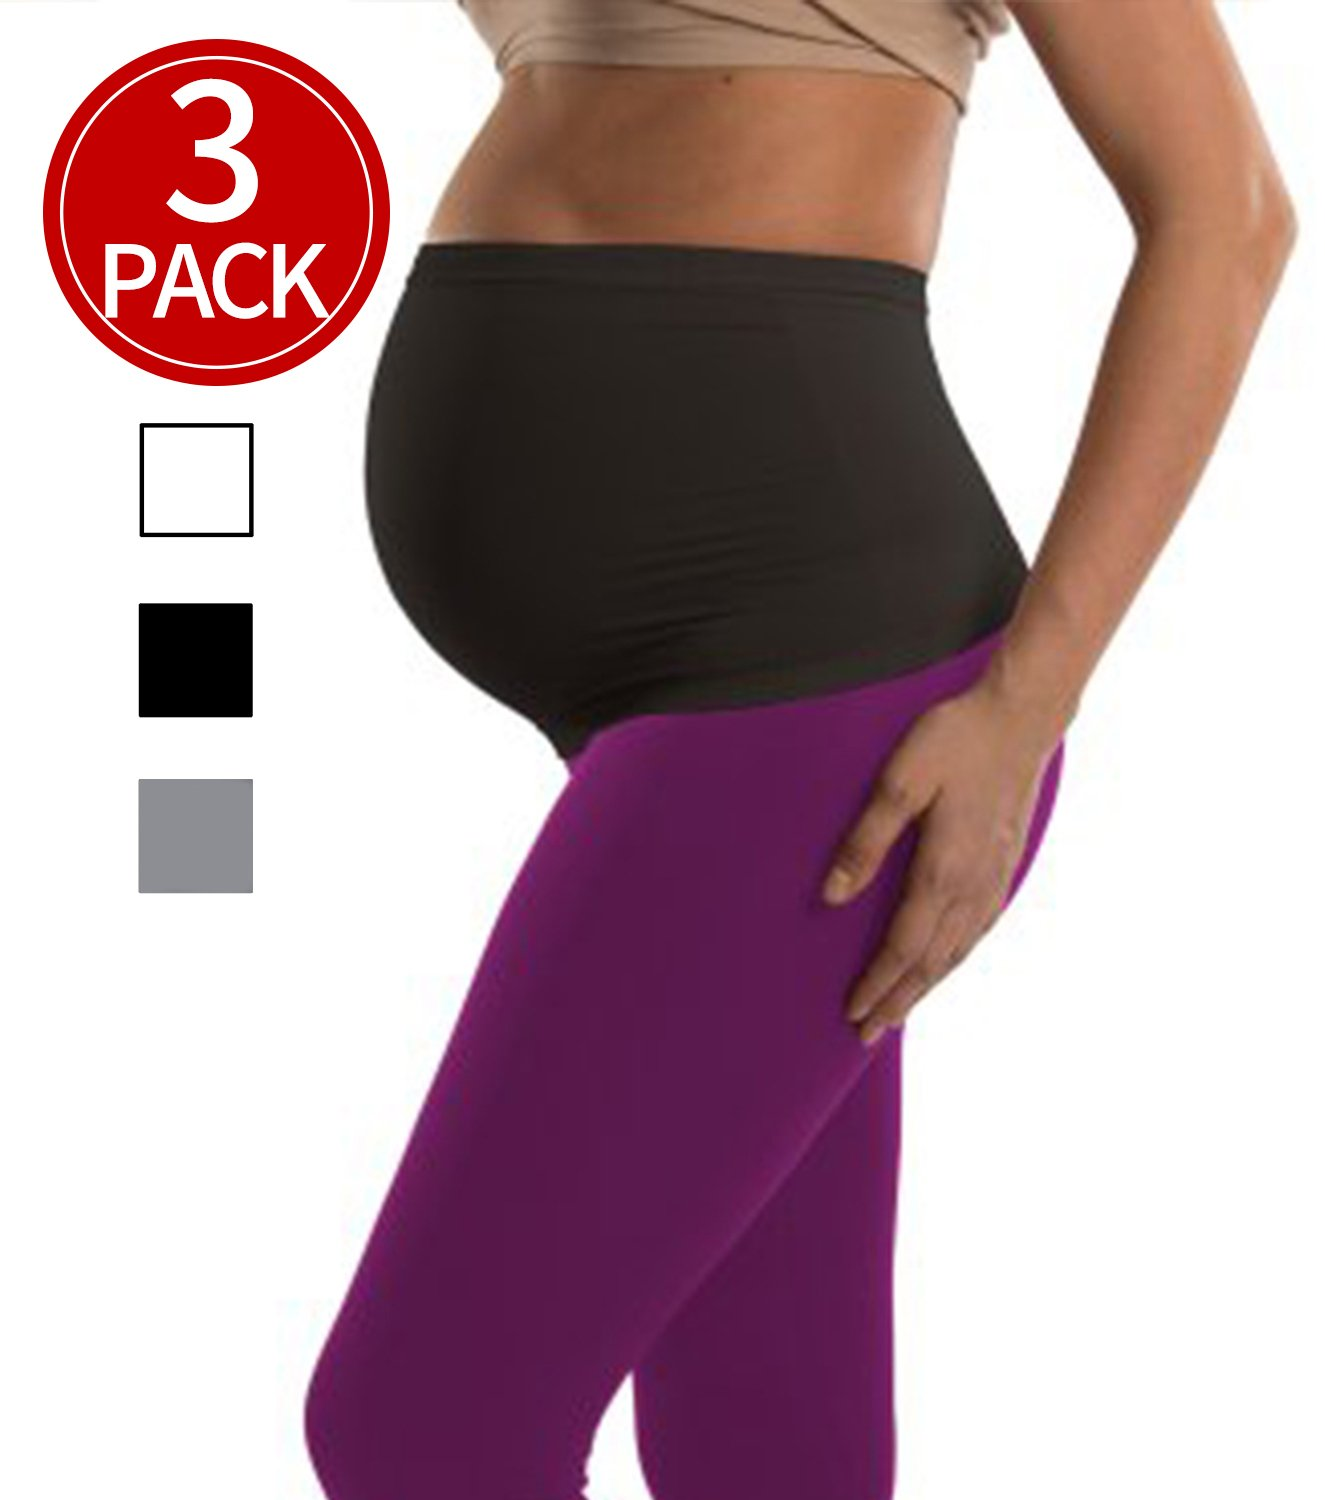 Womens Maternity Belly Band 3 Pack Seamless Everyday Support Bands for Pregnancy(Black+White+Grey) S